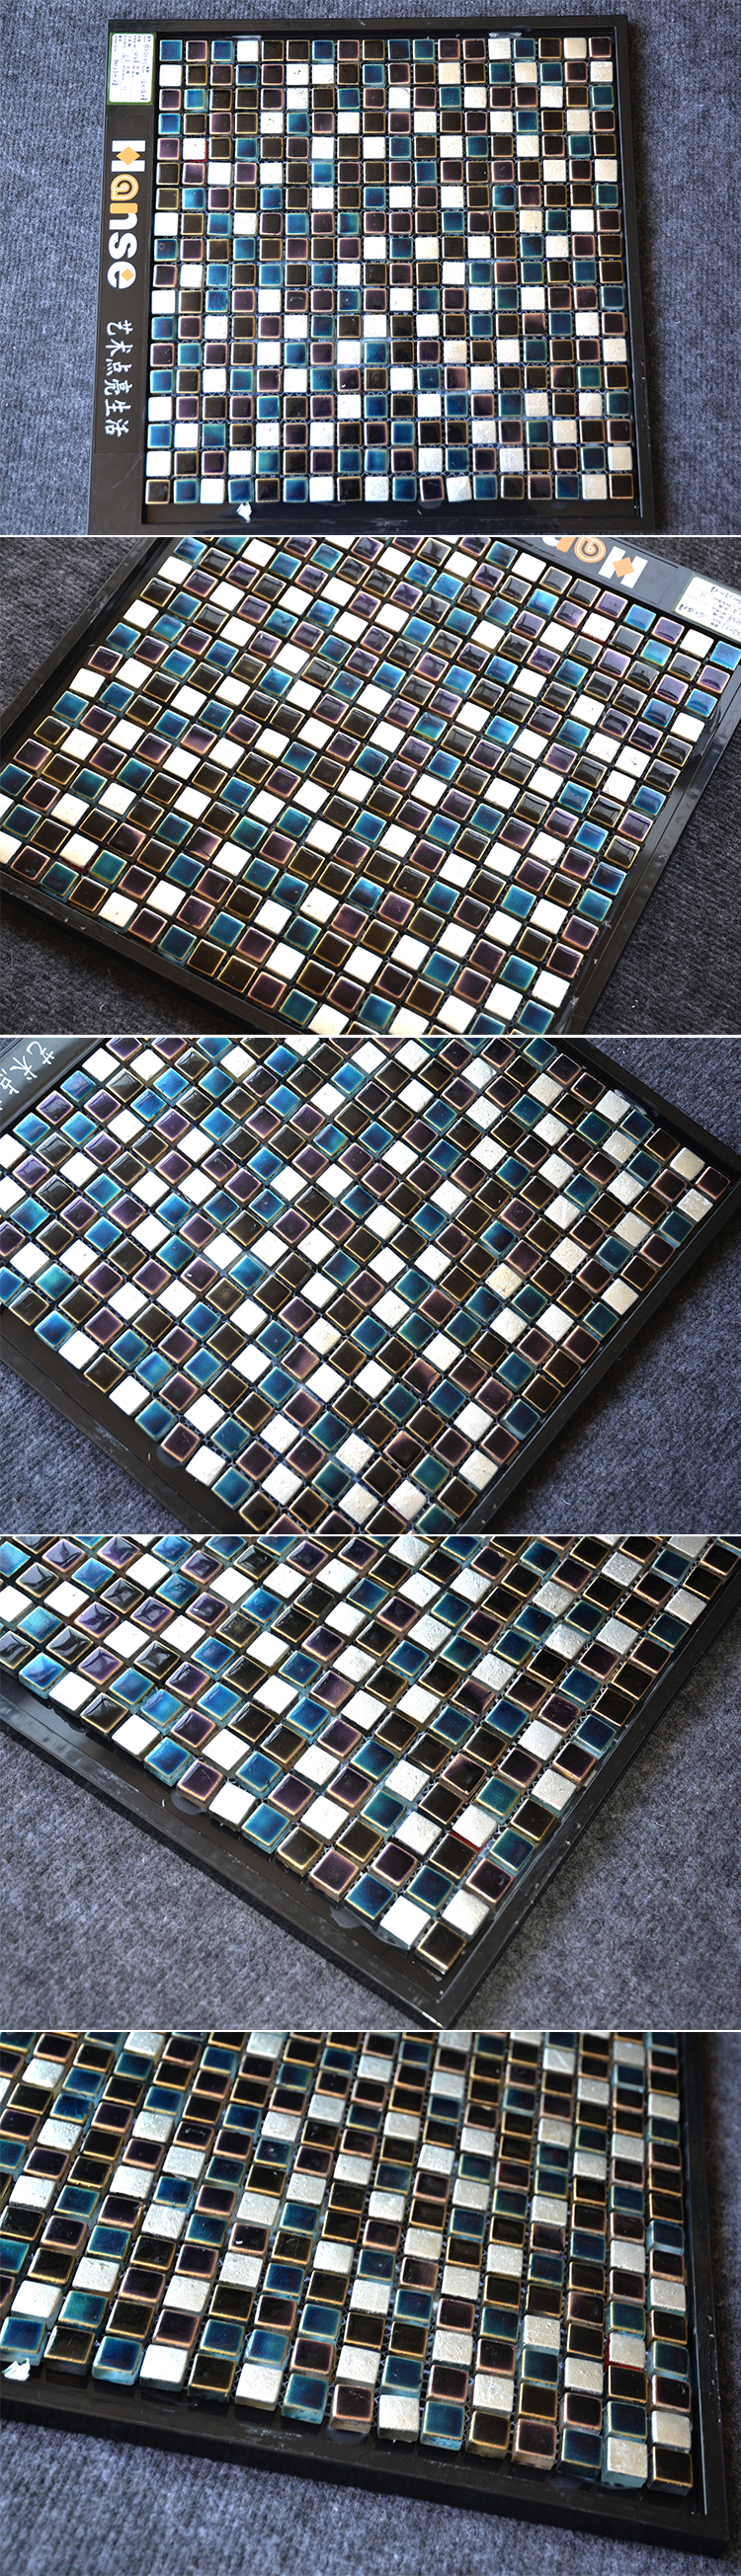 Discontinued floor tile mosaicluminous ceramic tileblue ceramic discontinued floor tile mosaicluminous ceramic tileblue ceramic floor tiles dailygadgetfo Image collections